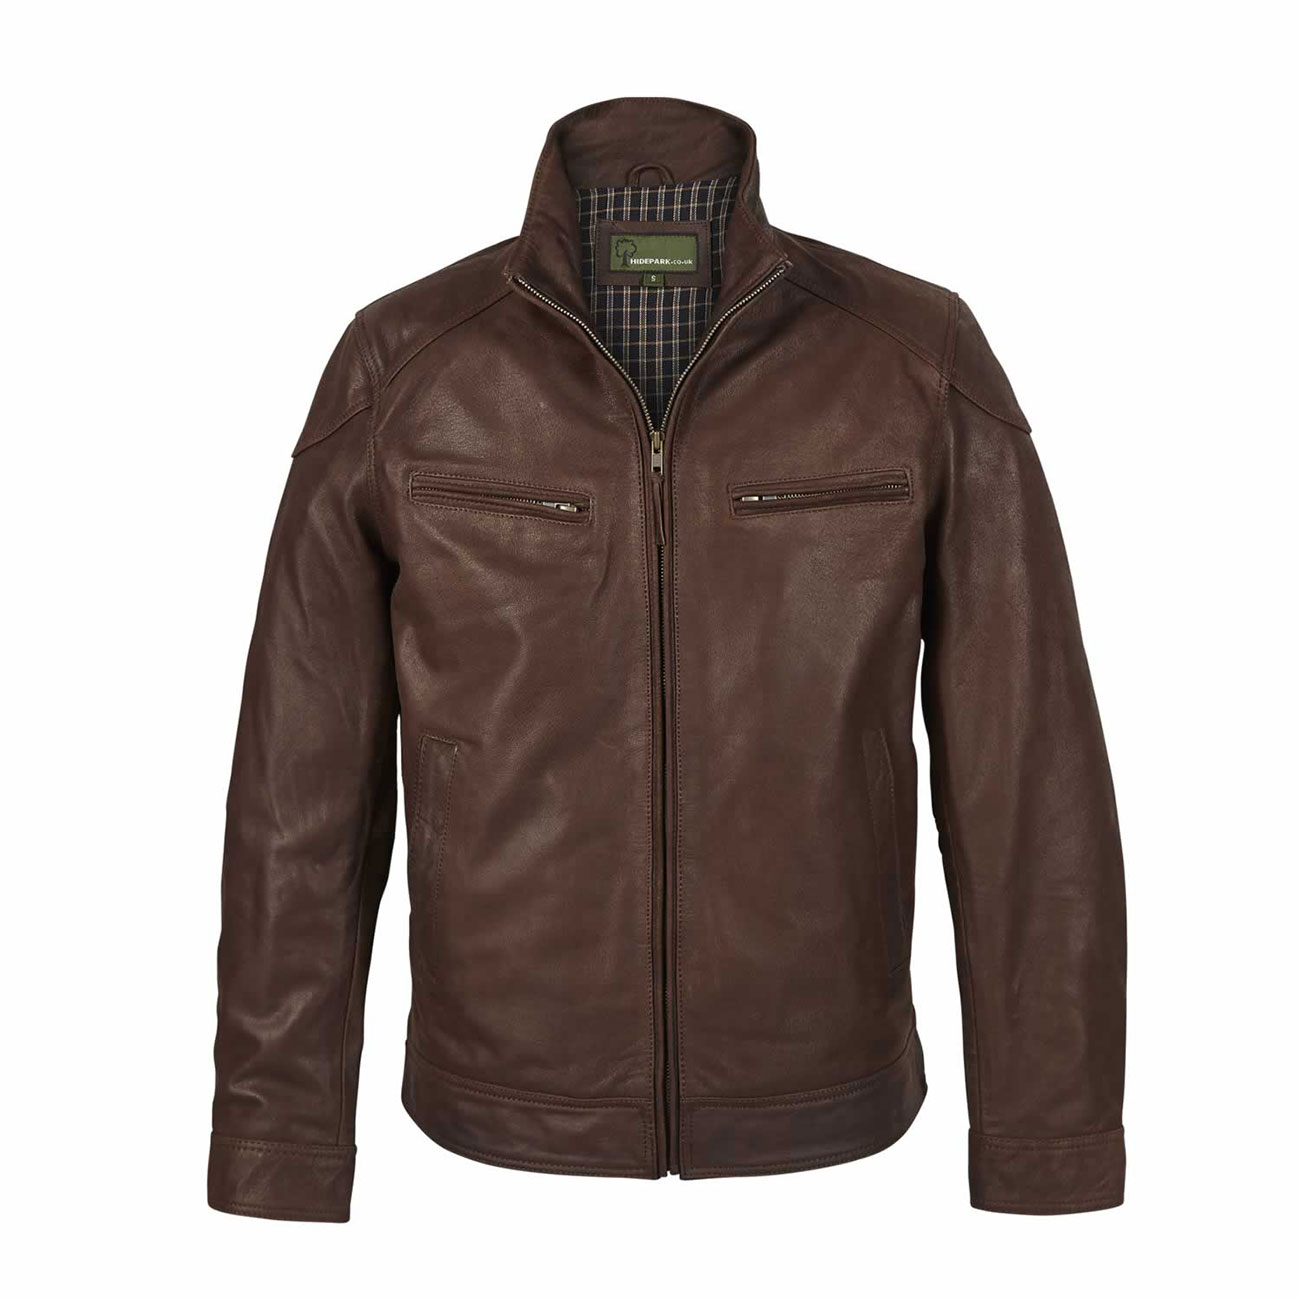 Mens Leather Jacket Light Brown Matt